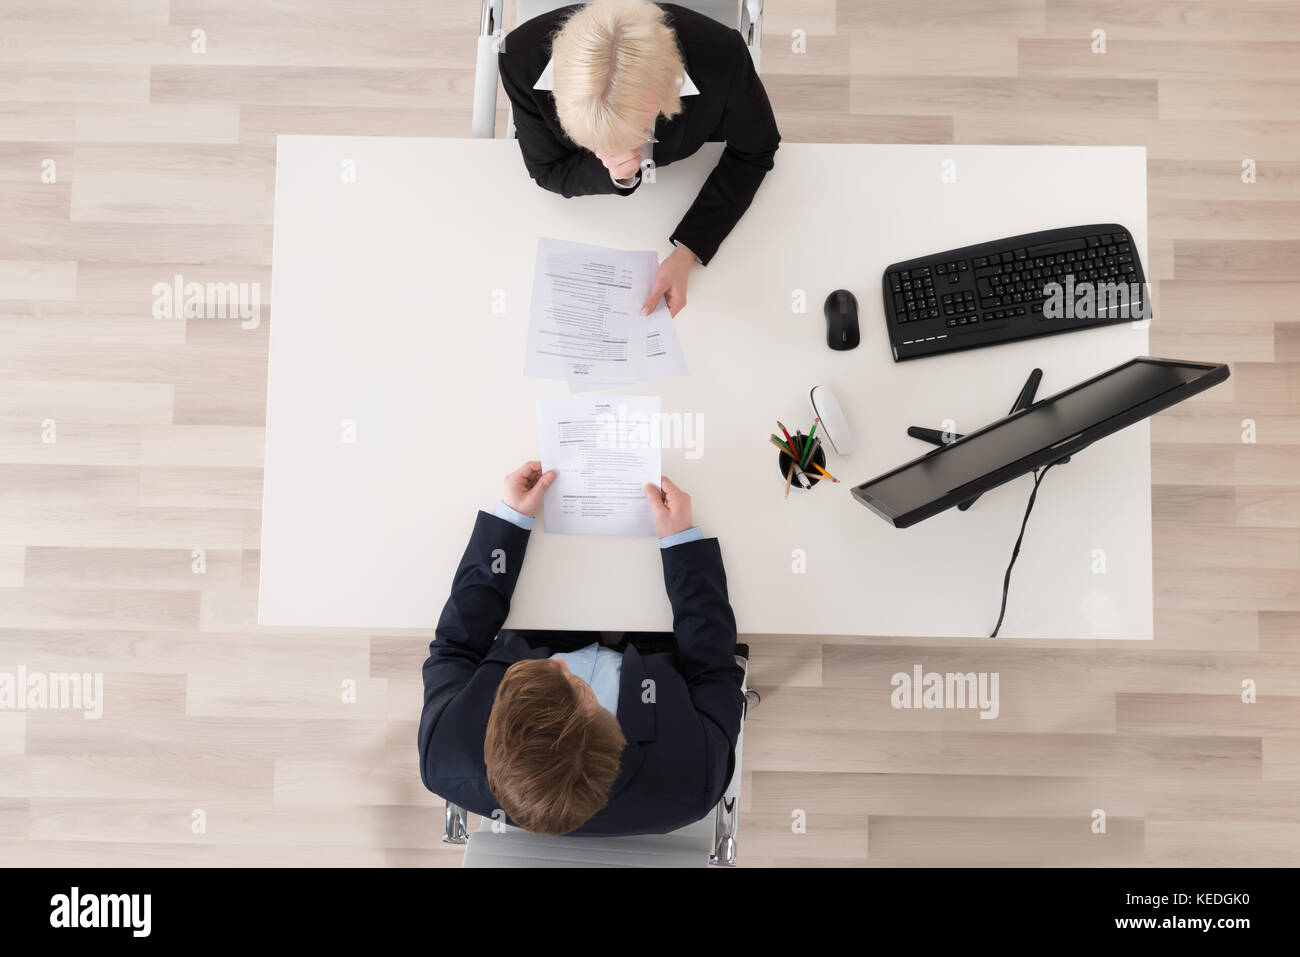 High angle view job interview at desk Photo Stock